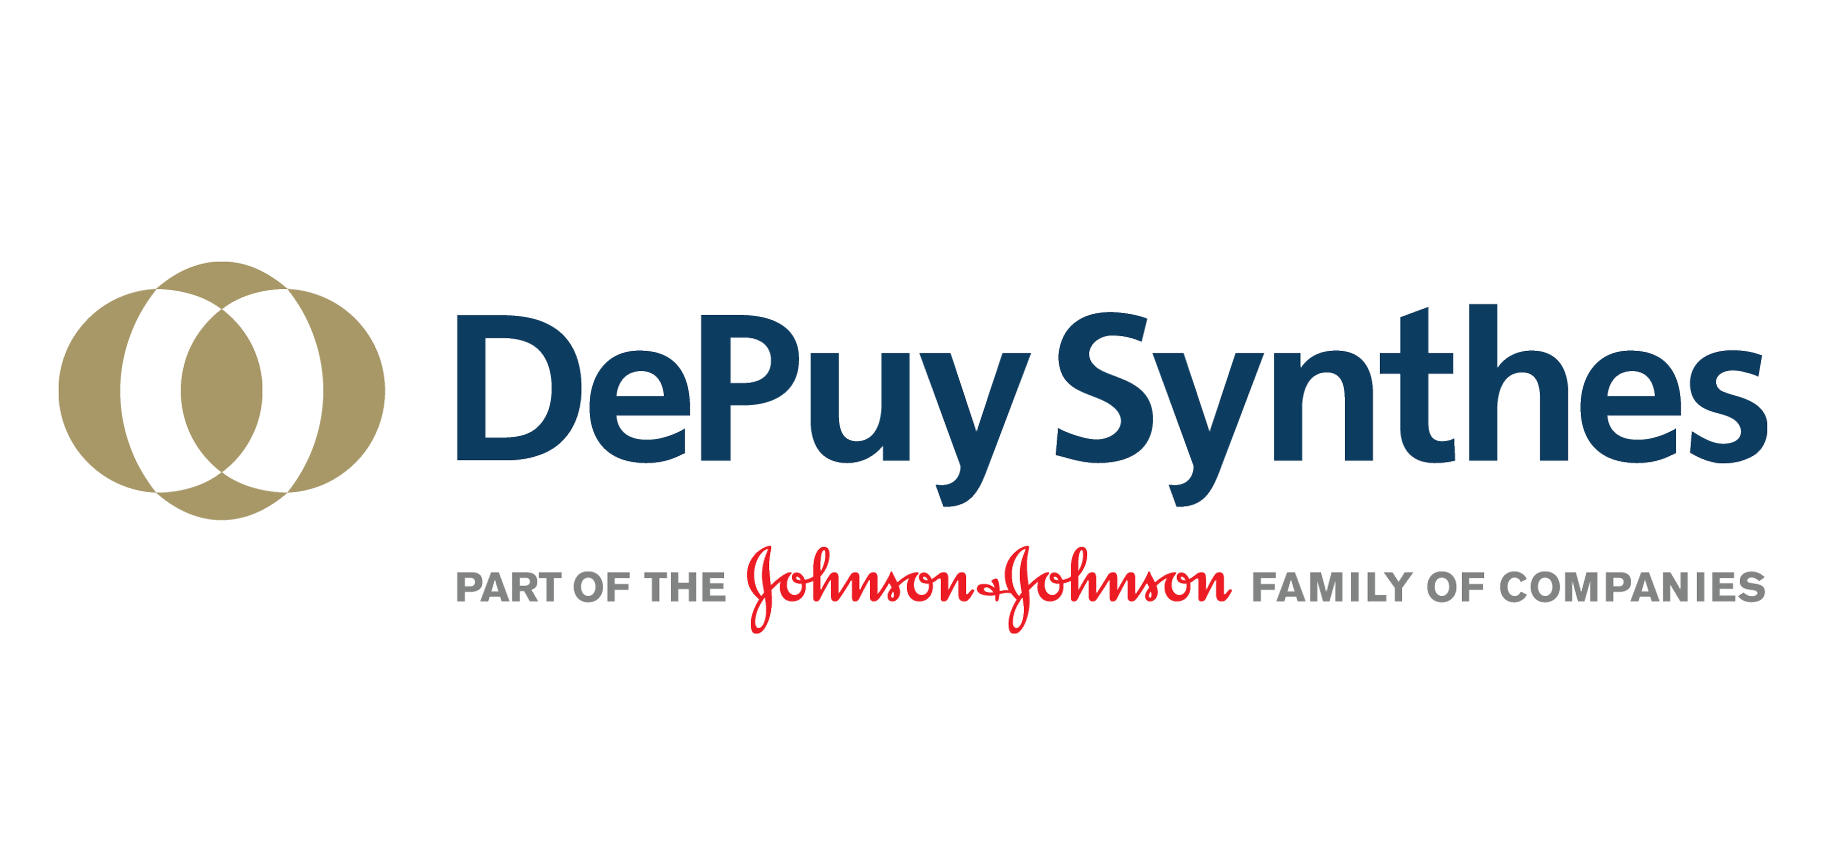 DePuy Synthes j&j logo